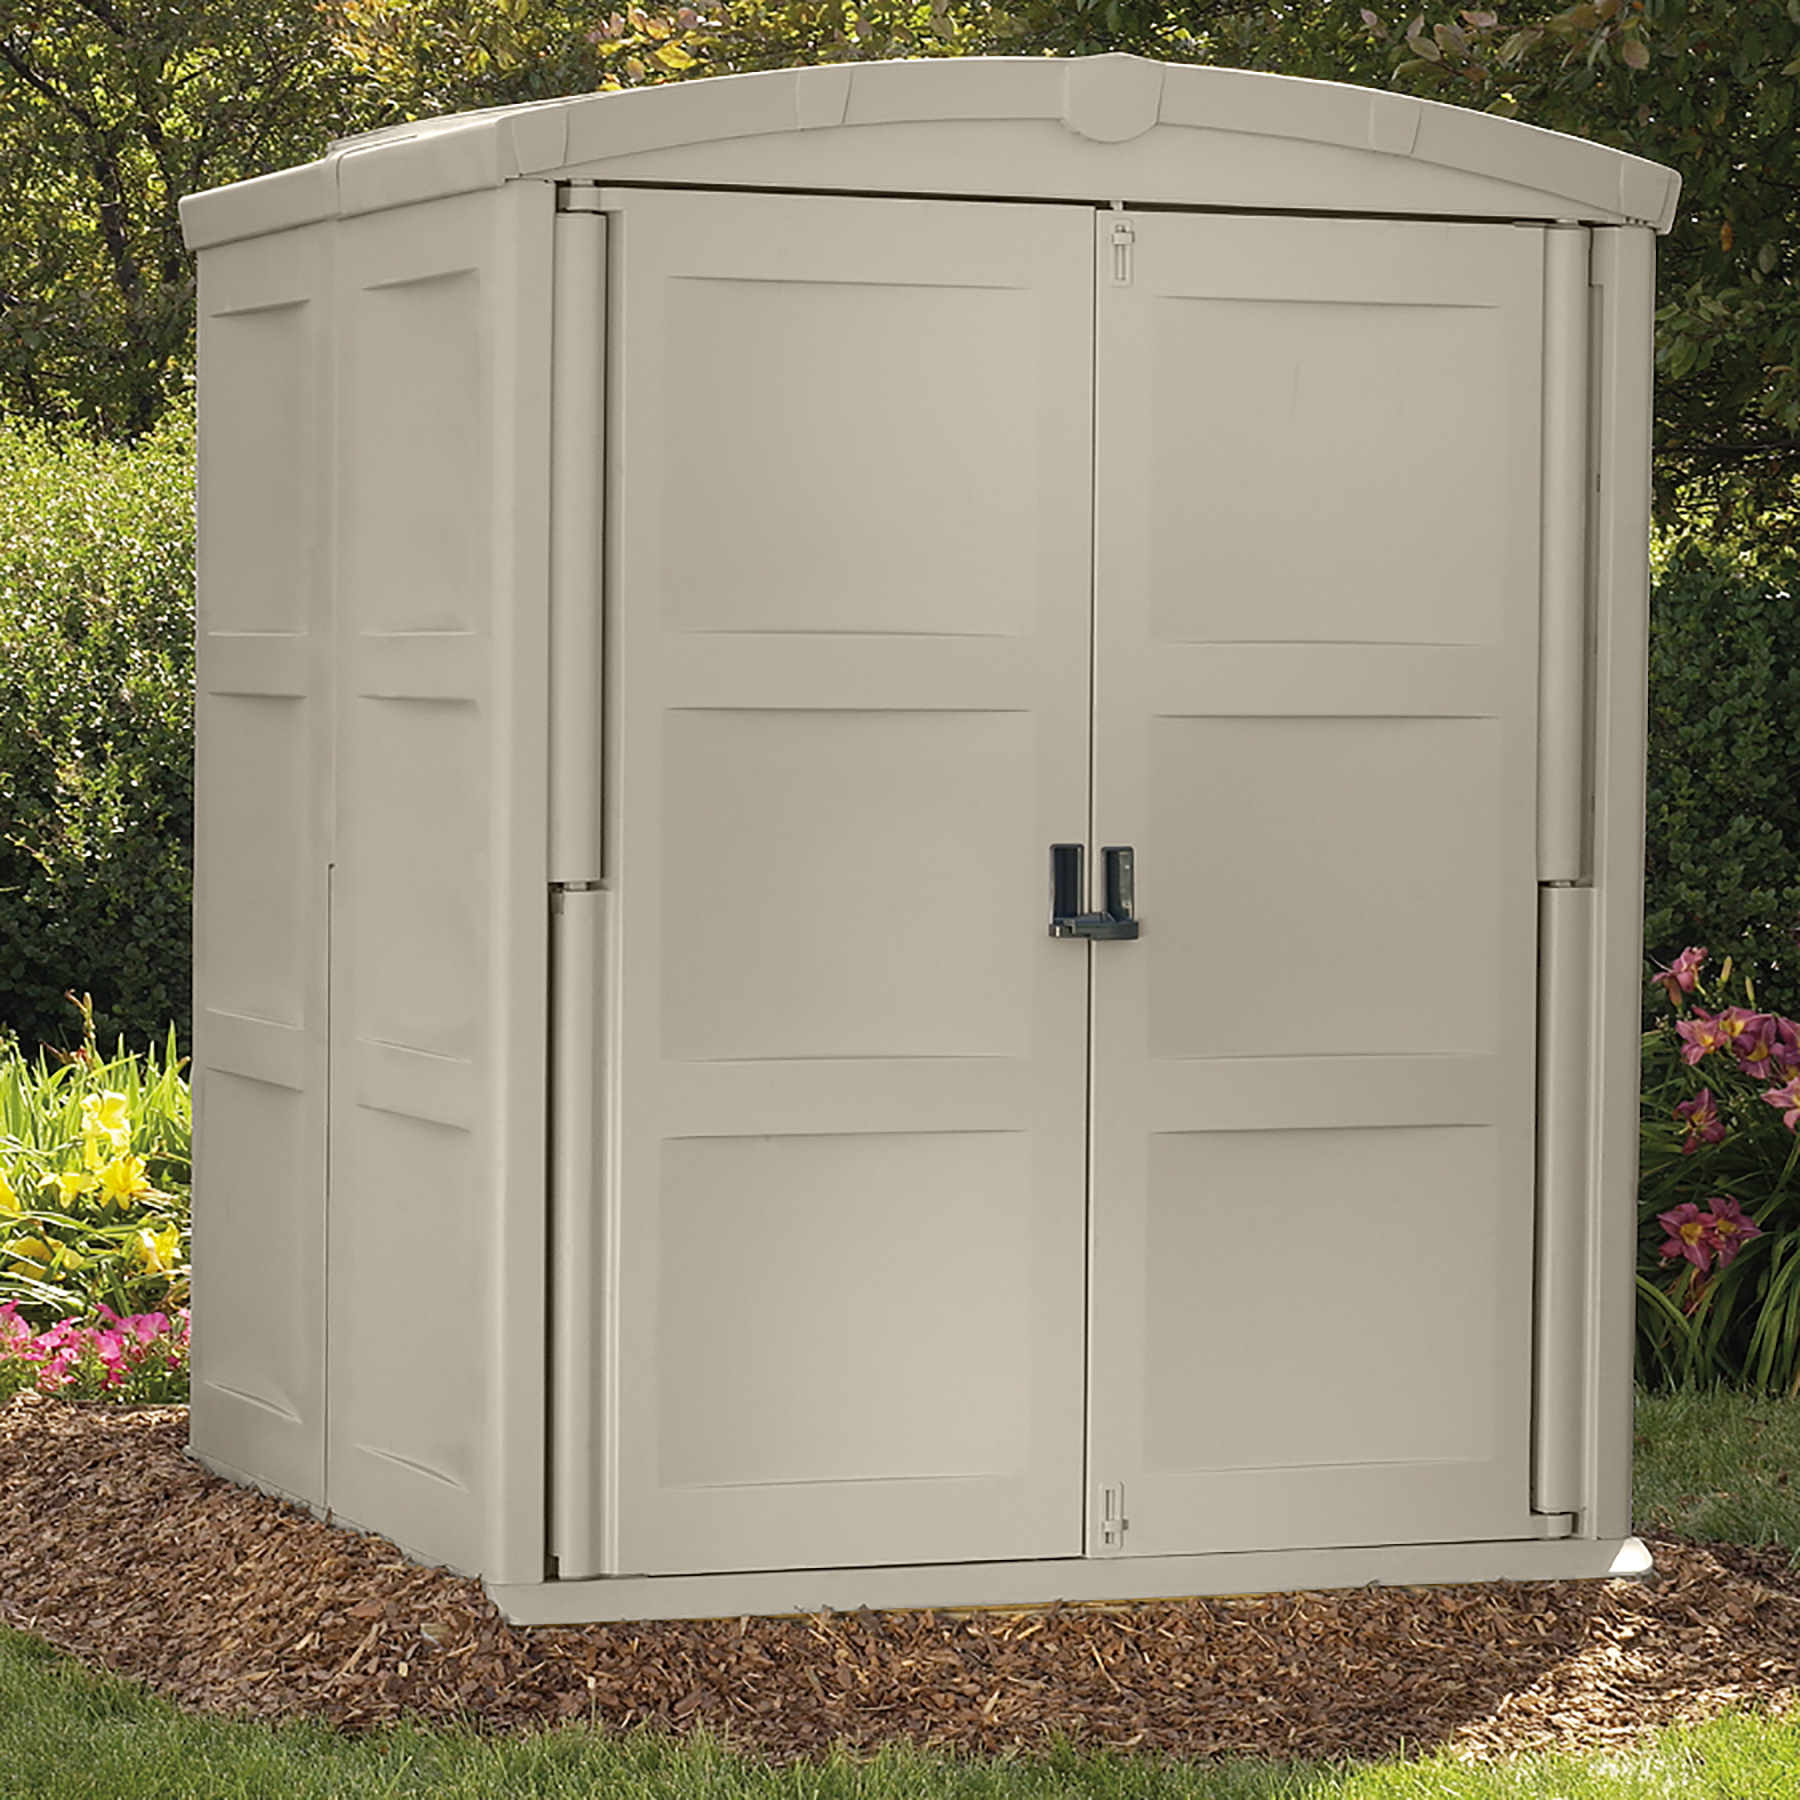 Suncast Storage Shed Large (5 ft. 5 in. D x 5 ft. 6 in. W x 6 ft. 11 in. H)